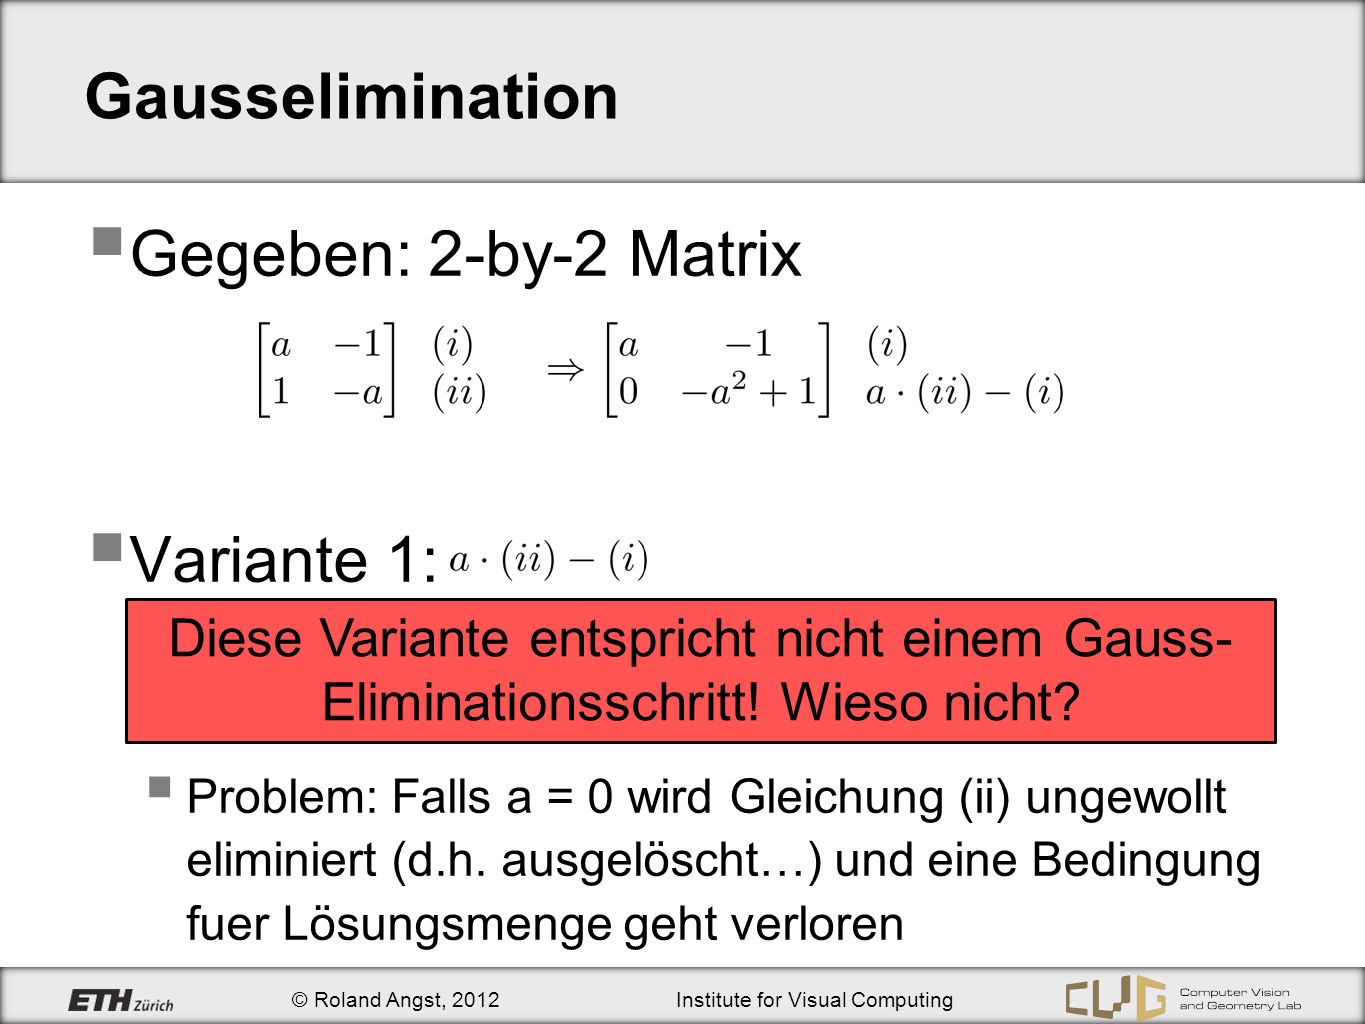 © Roland Angst, 2012Institute for Visual Computing Gausselimination Gegeben: 2-by-2 Matrix Variante 1: Problem: Falls a = 0 wird Gleichung (ii) ungewollt eliminiert (d.h.